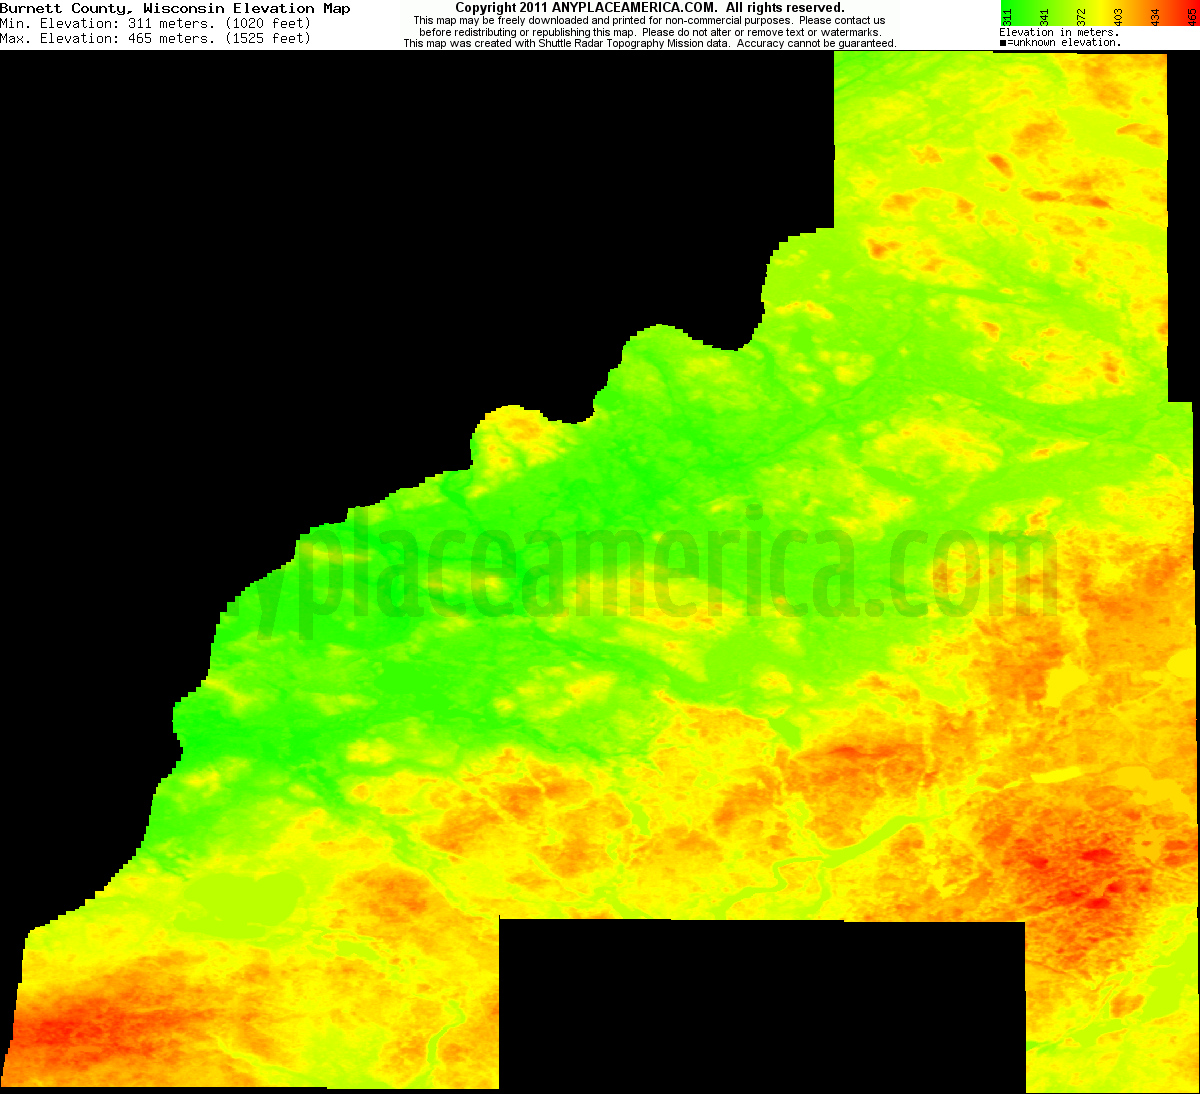 Download Burnett County Elevation Map